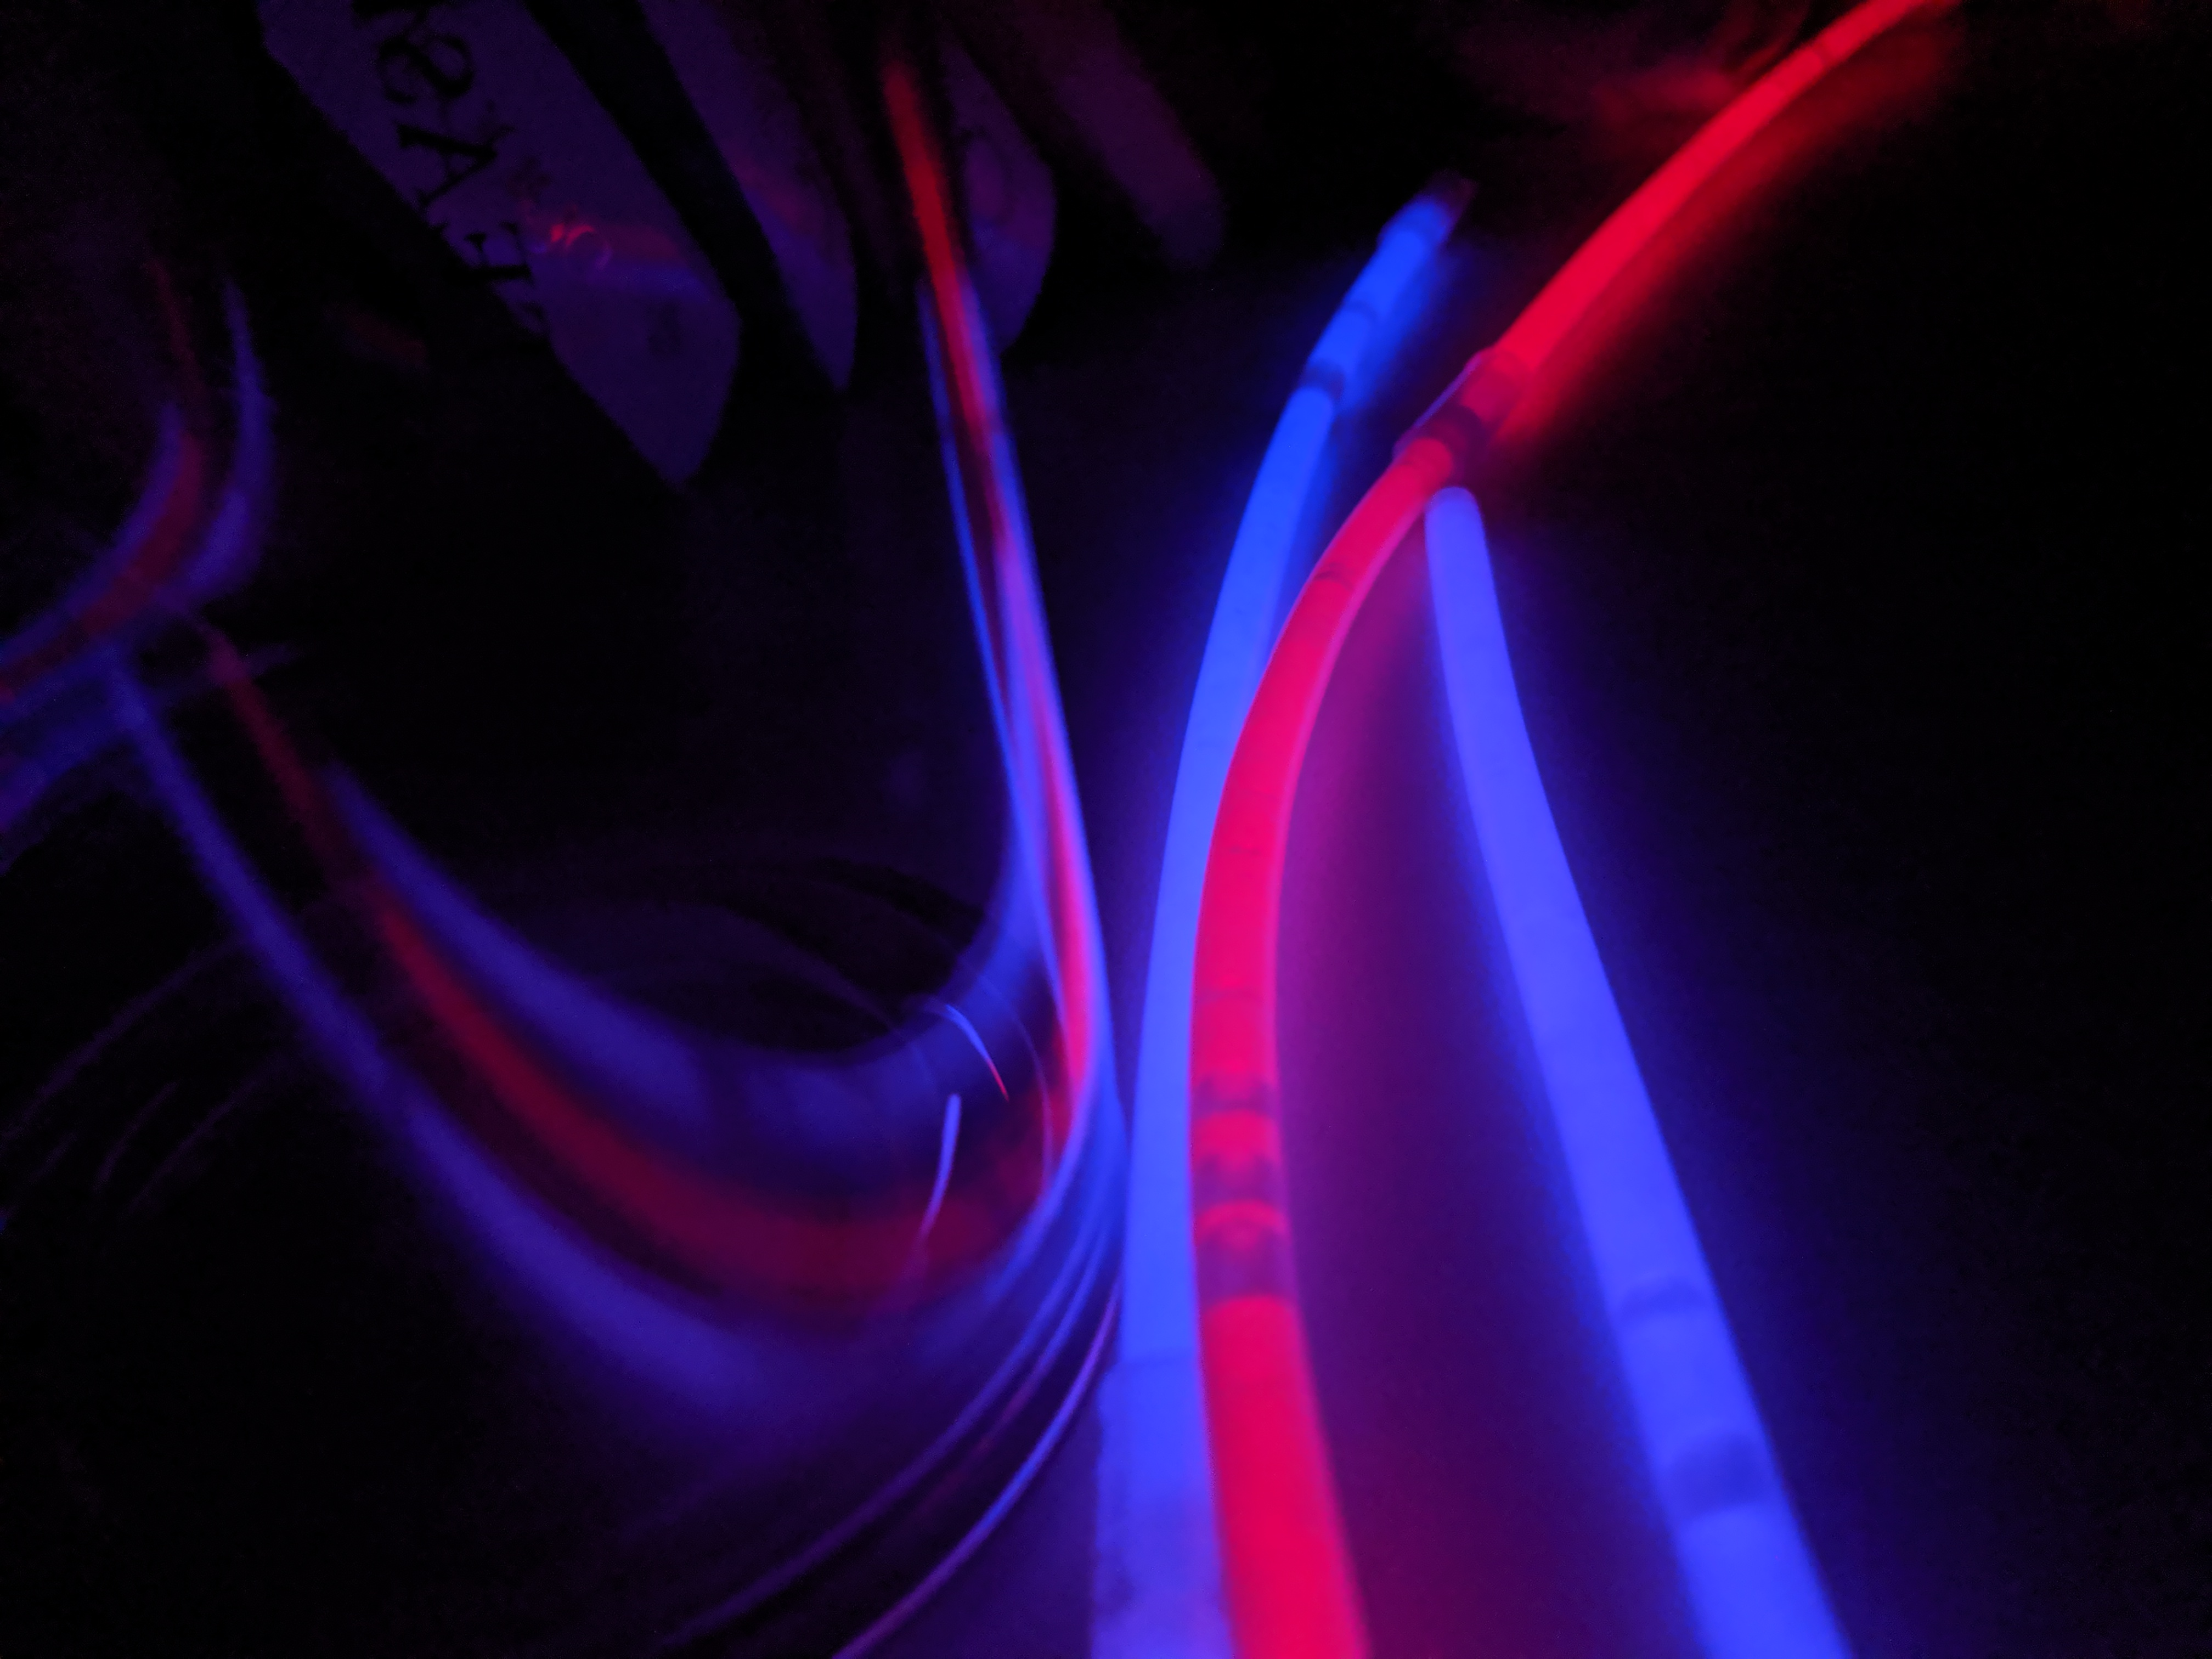 An almost abstract image of glowing glowsticks reflecting on a clear surface in the dark,creating multiple leading lines.